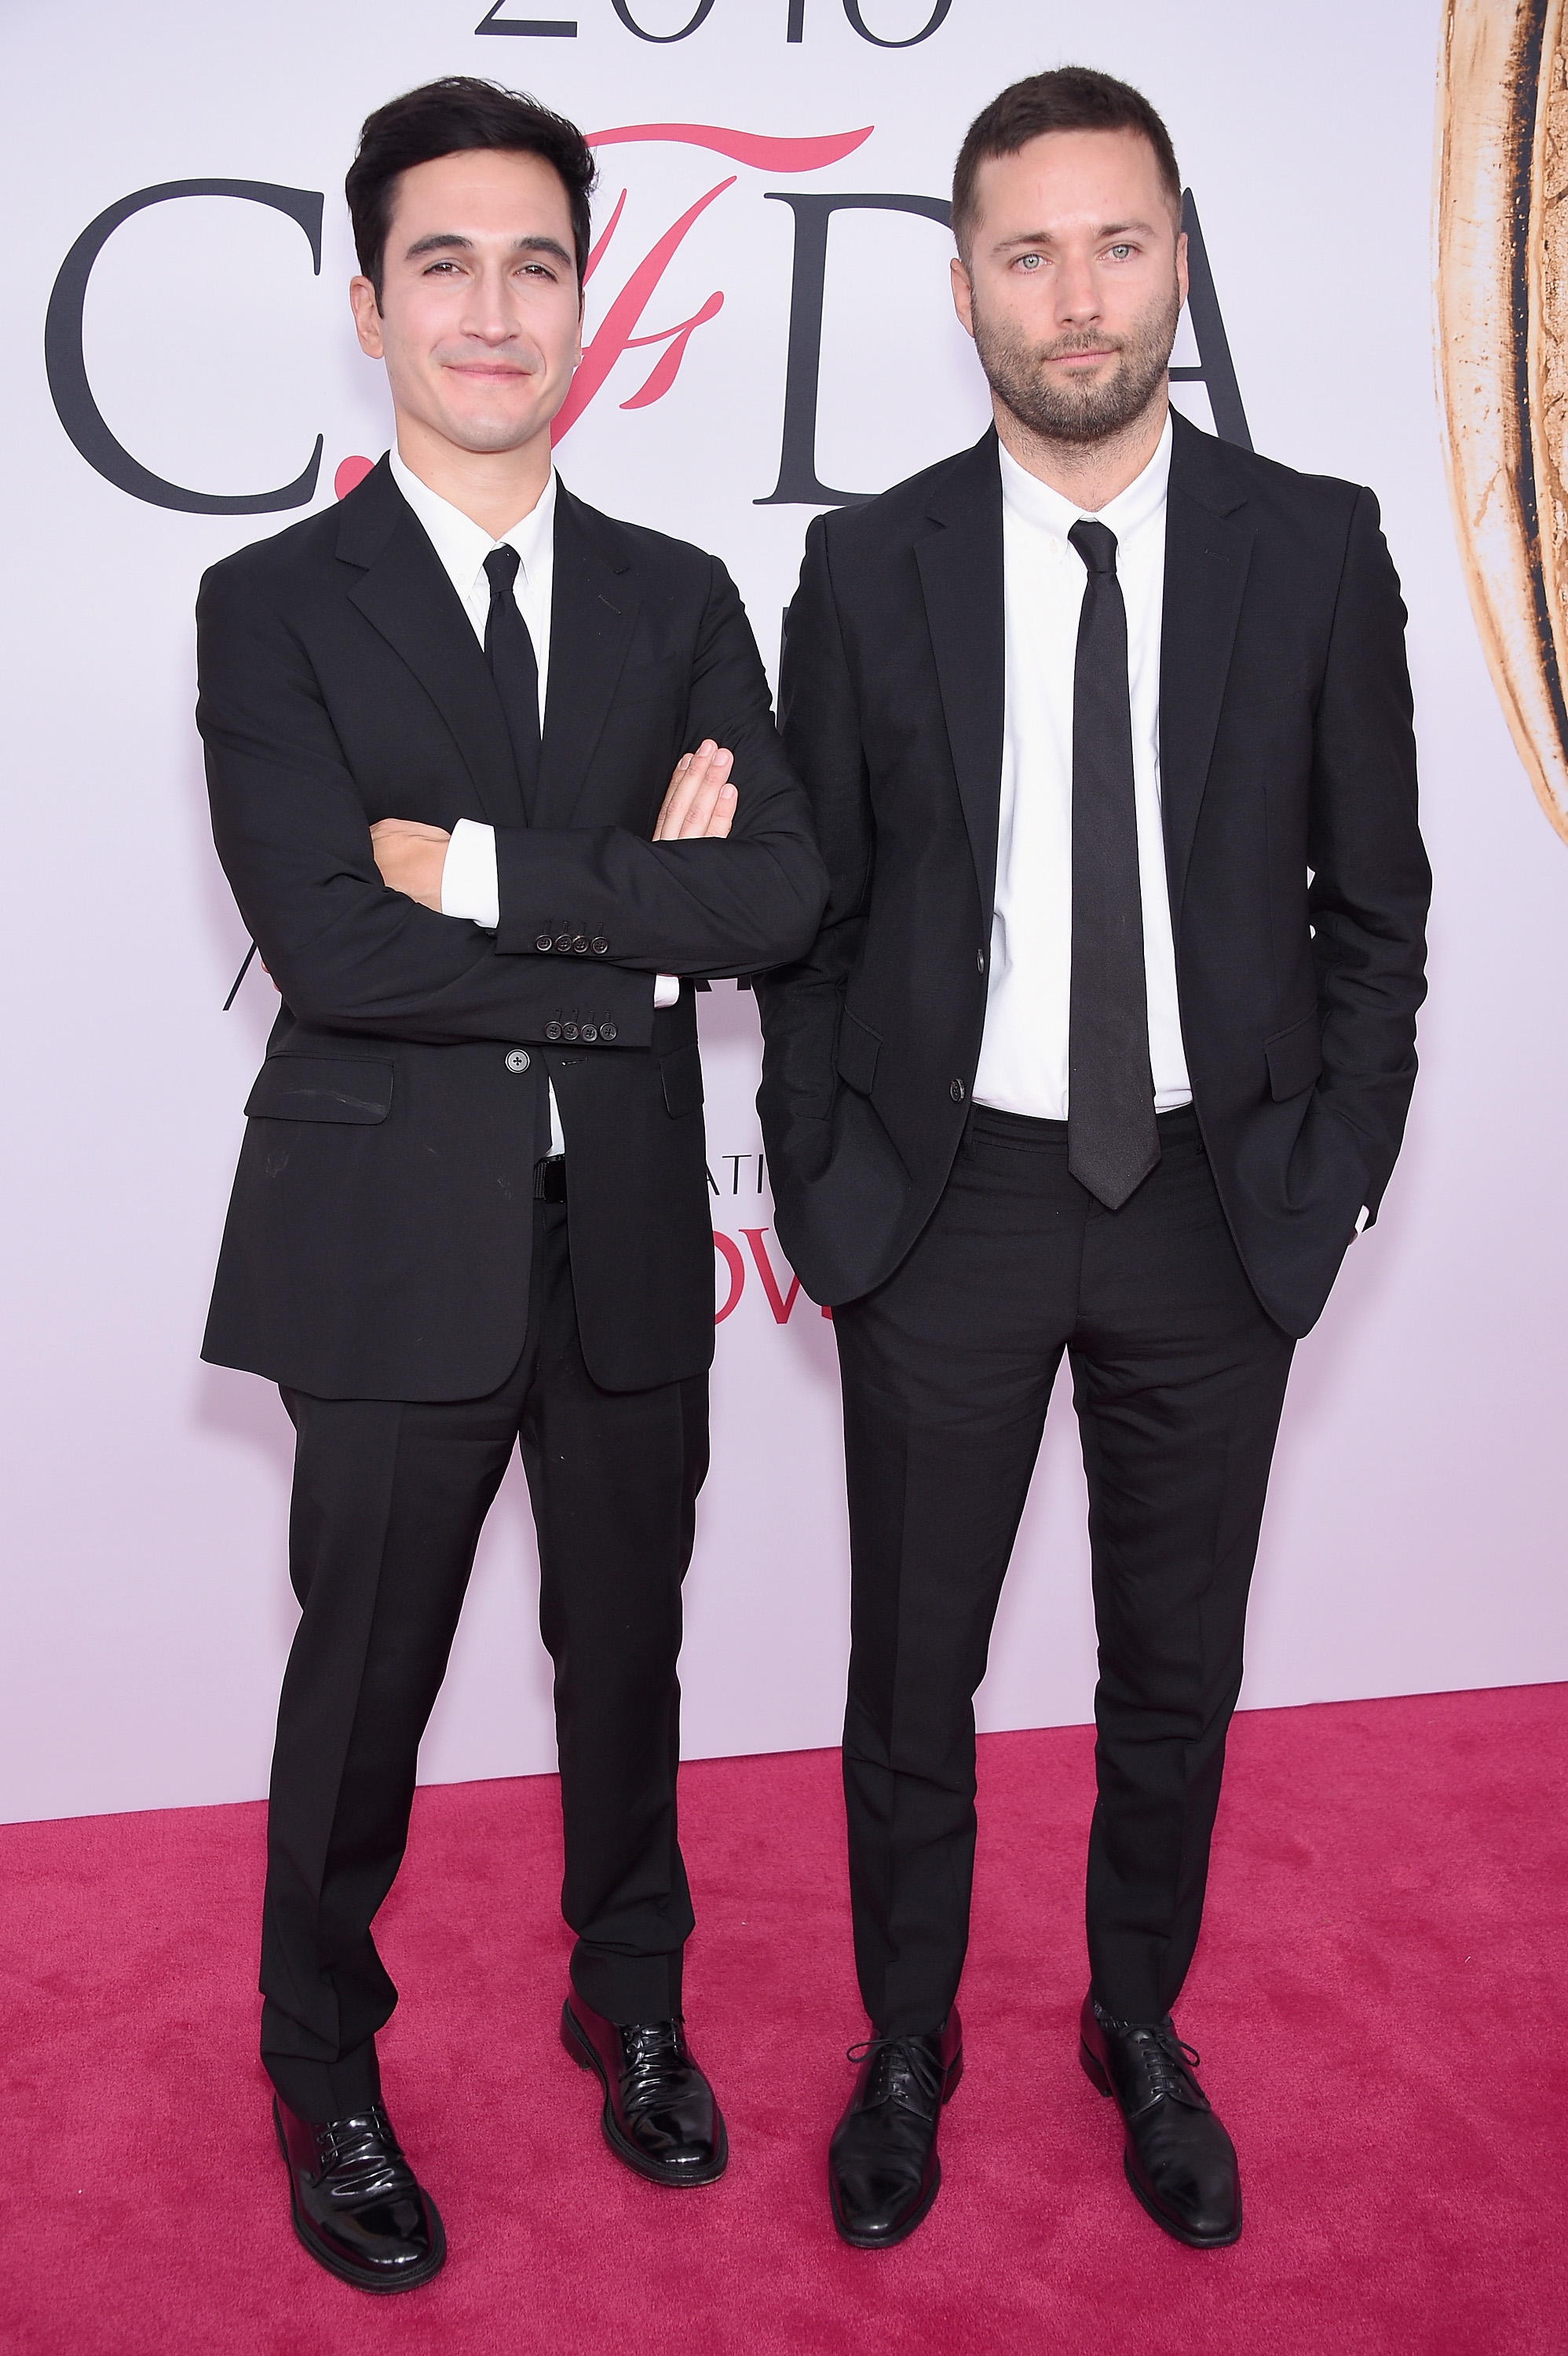 The Daily Roundup: Proenza Schouler Scouts New CEO, A$AP